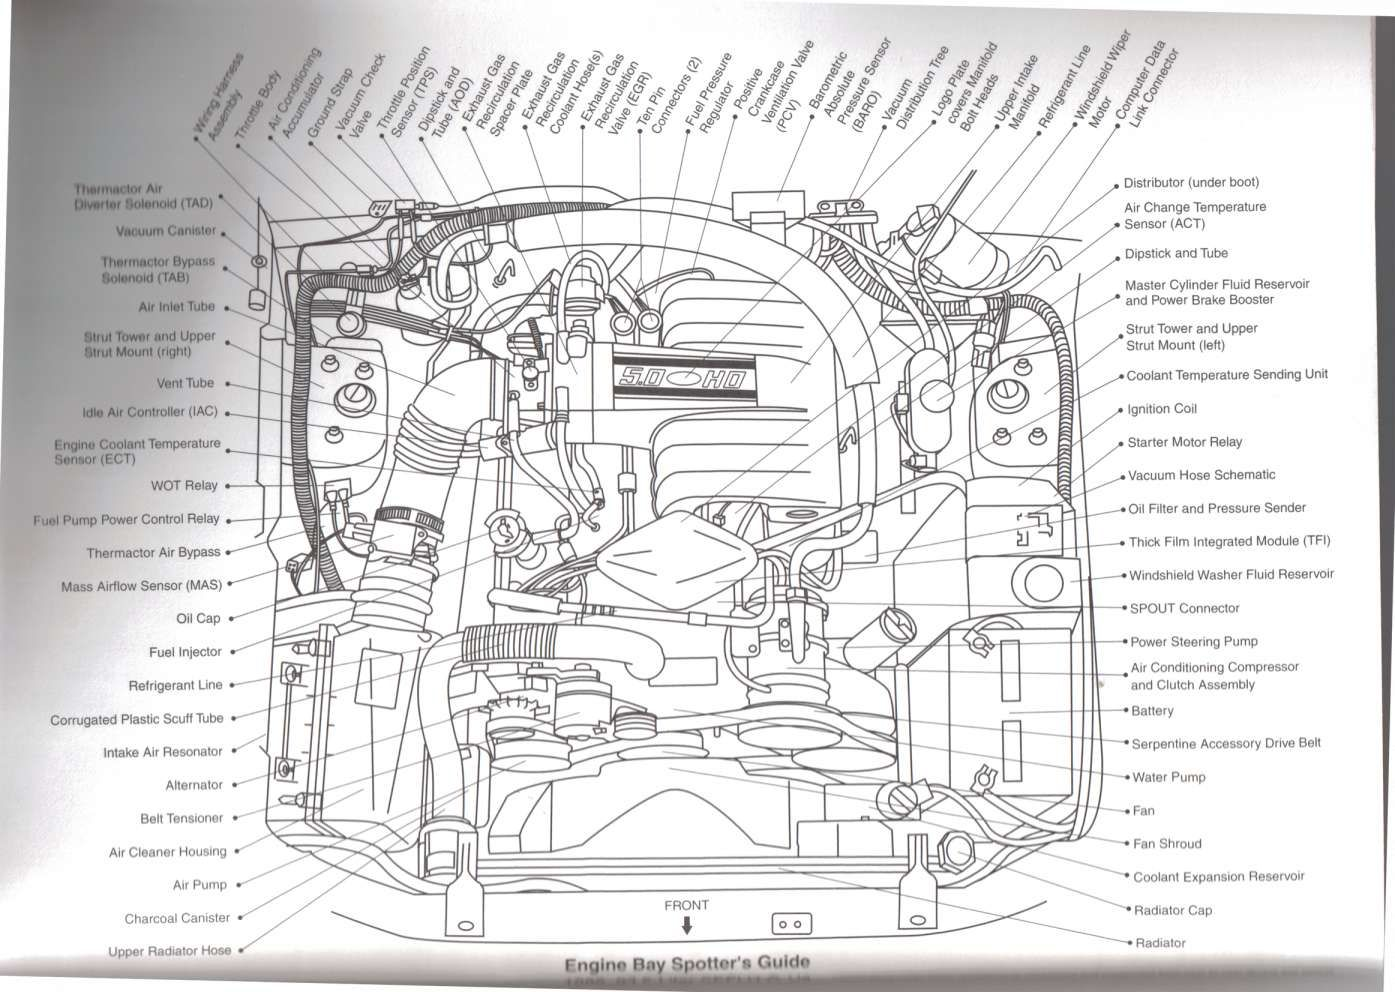 1998 mustang wiring harness diagram - wiring diagram wire dark-check-a -  dark-check-a.cinquestorie.it  cinquestorie.it